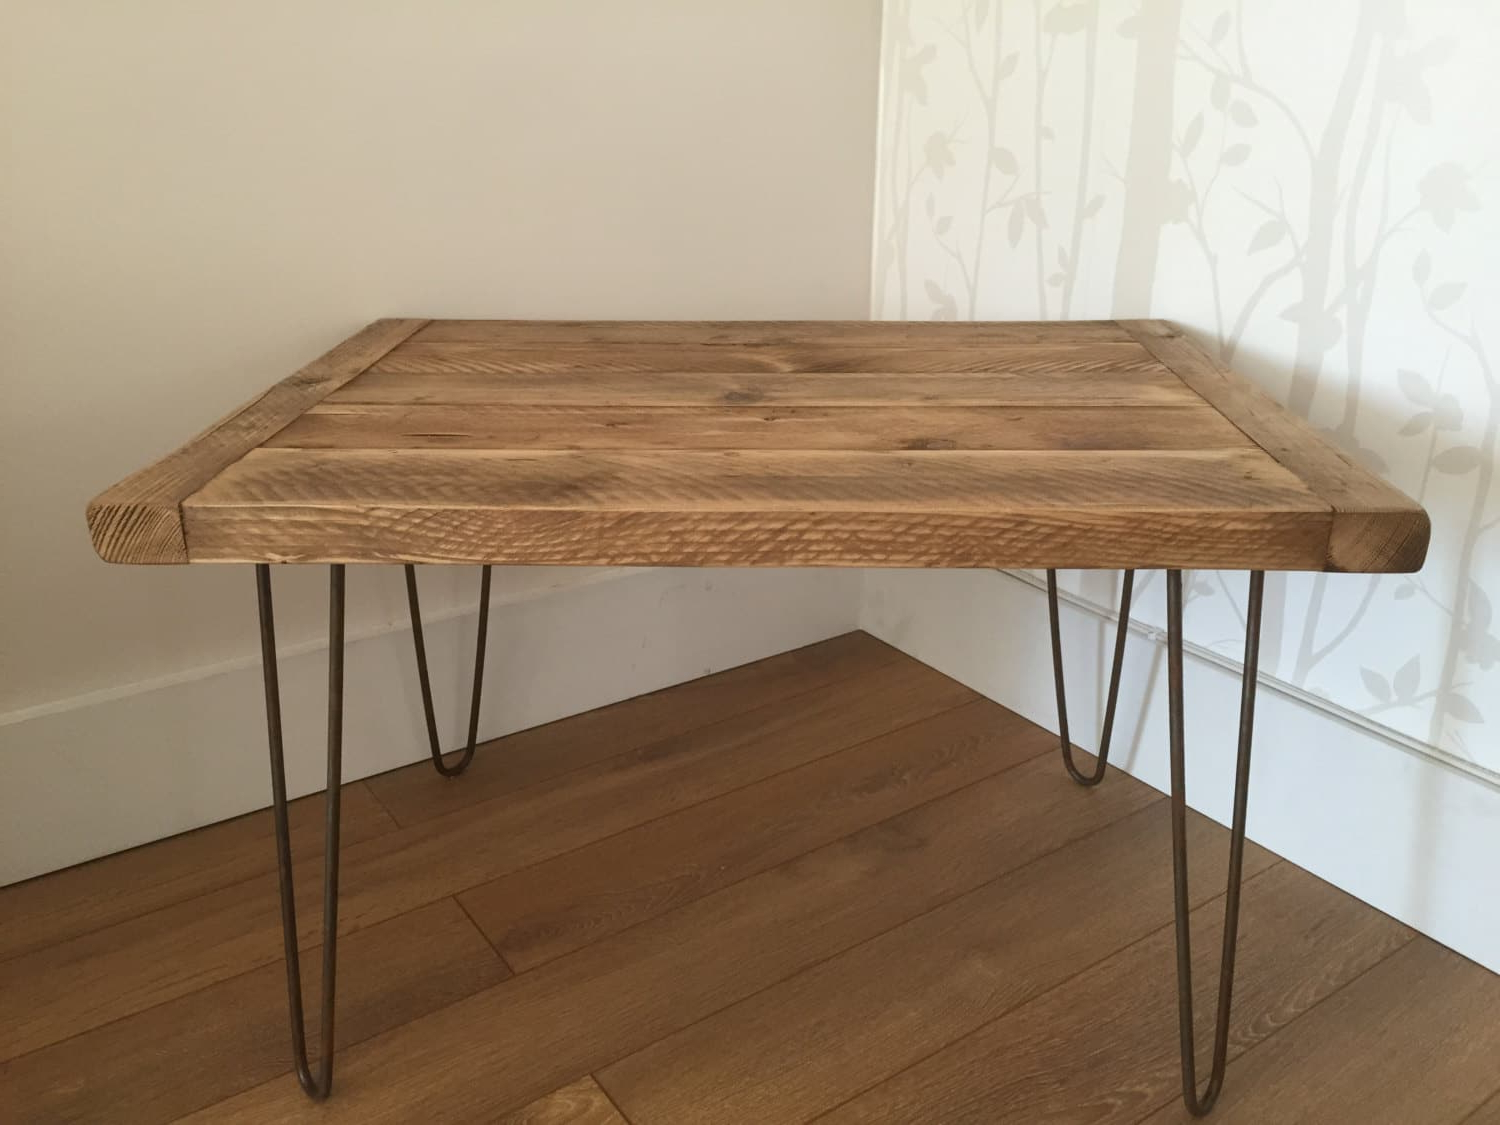 Most Current Reclaimed Pine & Iron Coffee Tables With Regard To Reclaimed Rustic Solid Pine Coffee Table With Metal Hairpin Legs (View 10 of 20)